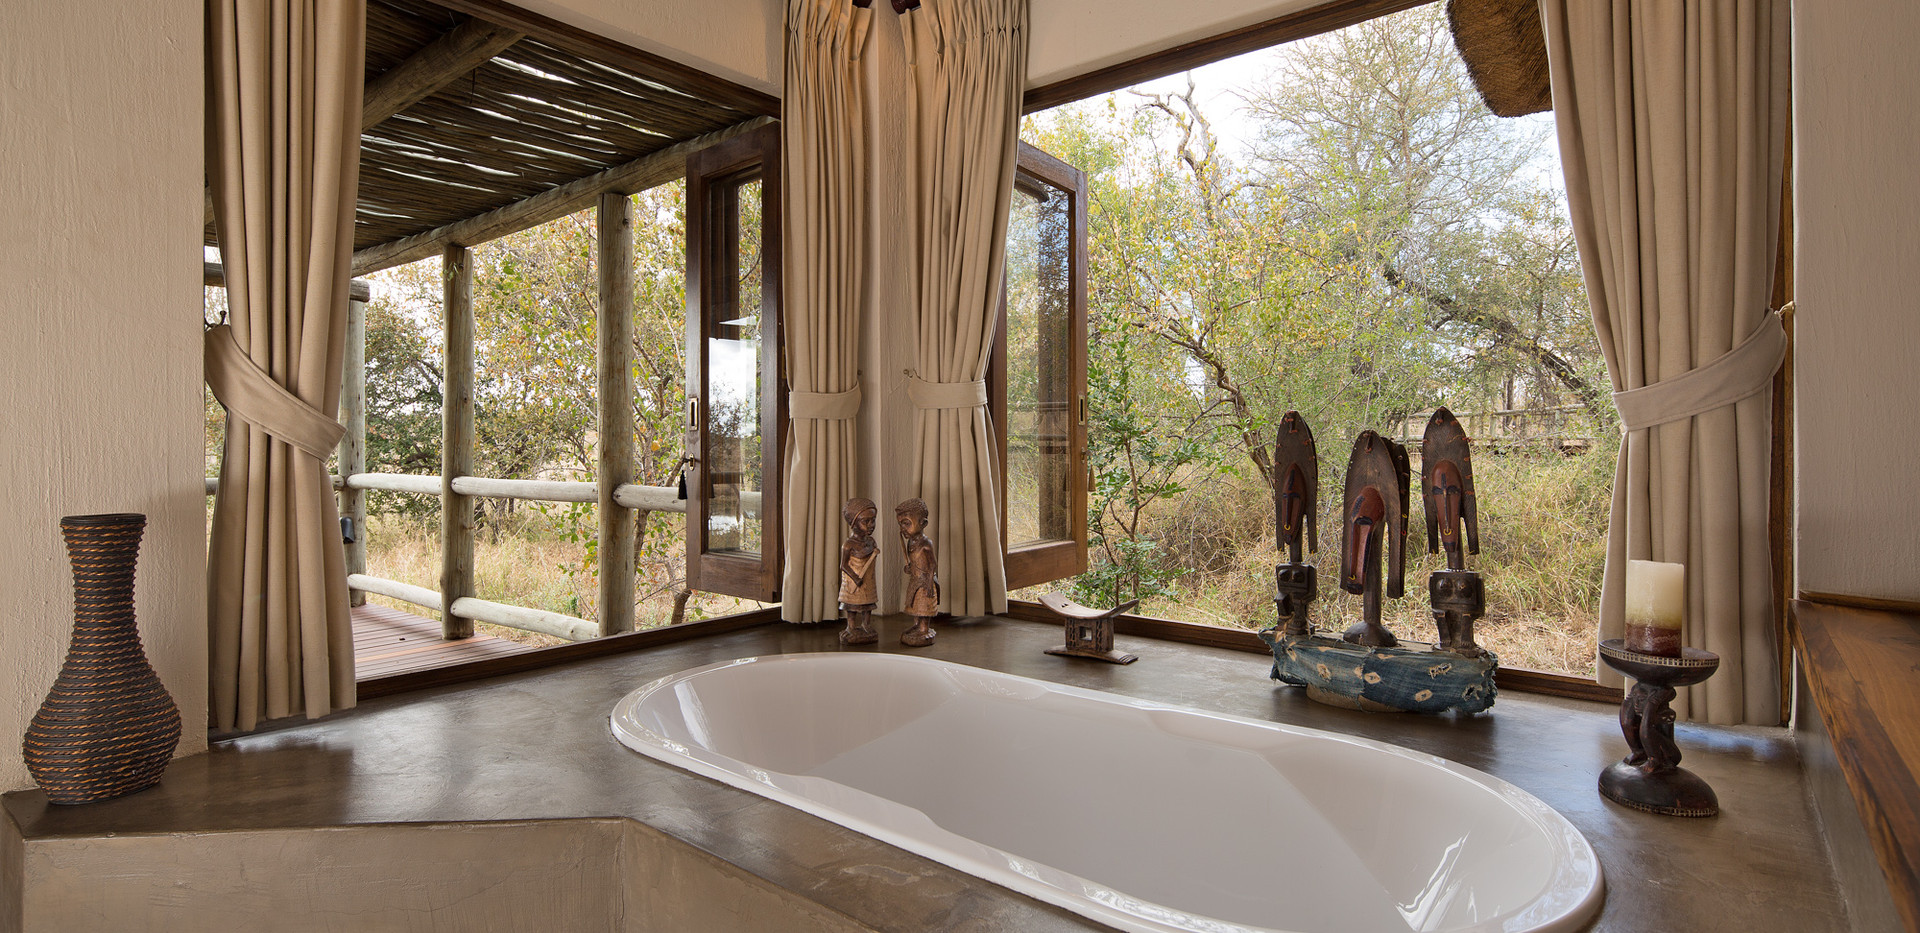 relax in the tub at Weaver's Nest Lodge